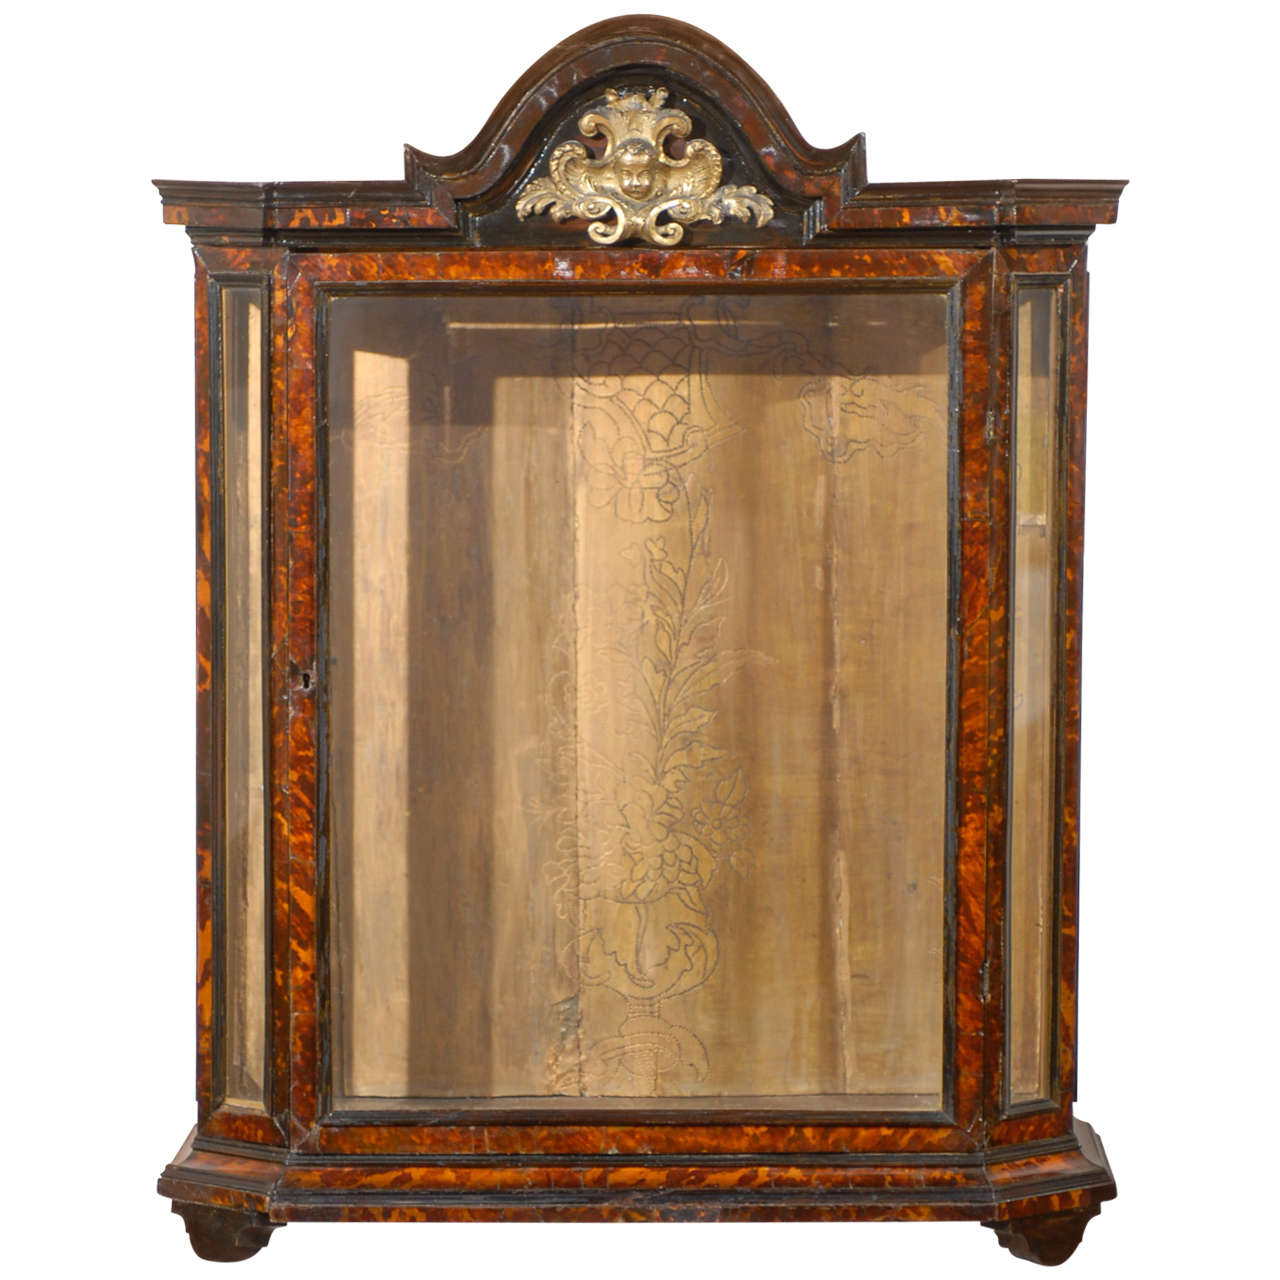 Irresistible Glass At Glass Curio Cabinets Ebay Glass Curio Cabinet Online India Sale Tortoised Curio Cabinet Glass Tortoised Curio Cabinet houzz-03 Glass Curio Cabinet